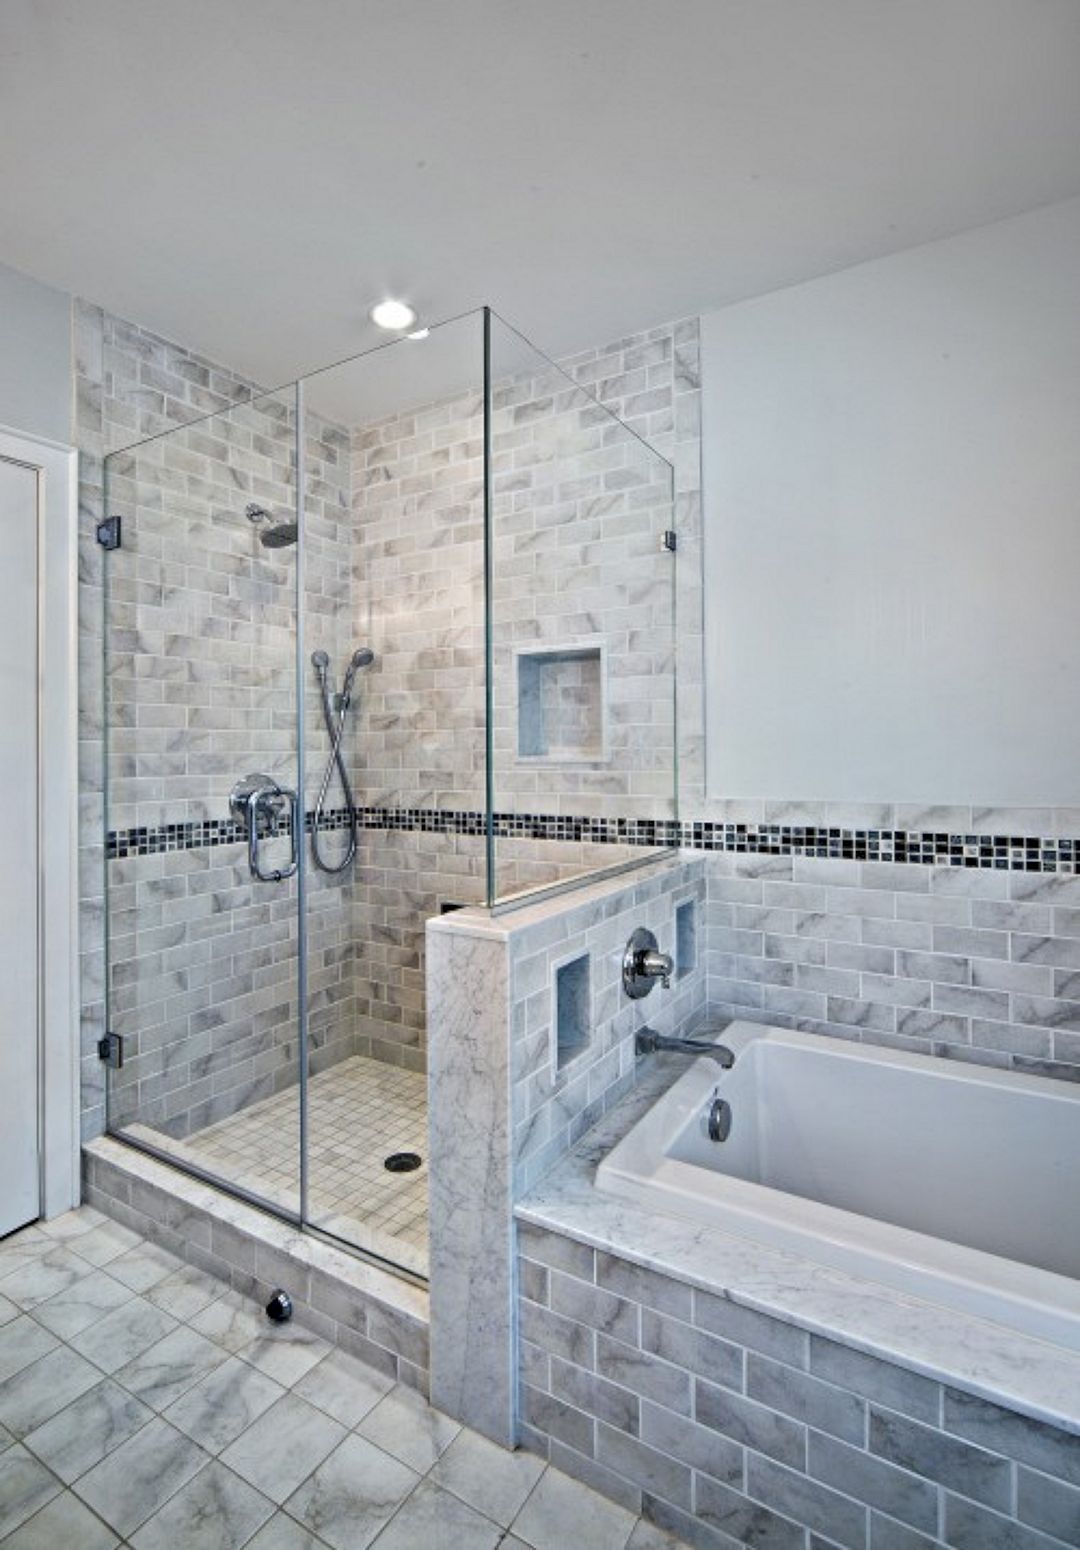 Master Bathroom Floor Plans Shower Only Remodel No Tub Walk In Bathroom Remodel Designs Bathrooms Remodel Master Bathroom Design